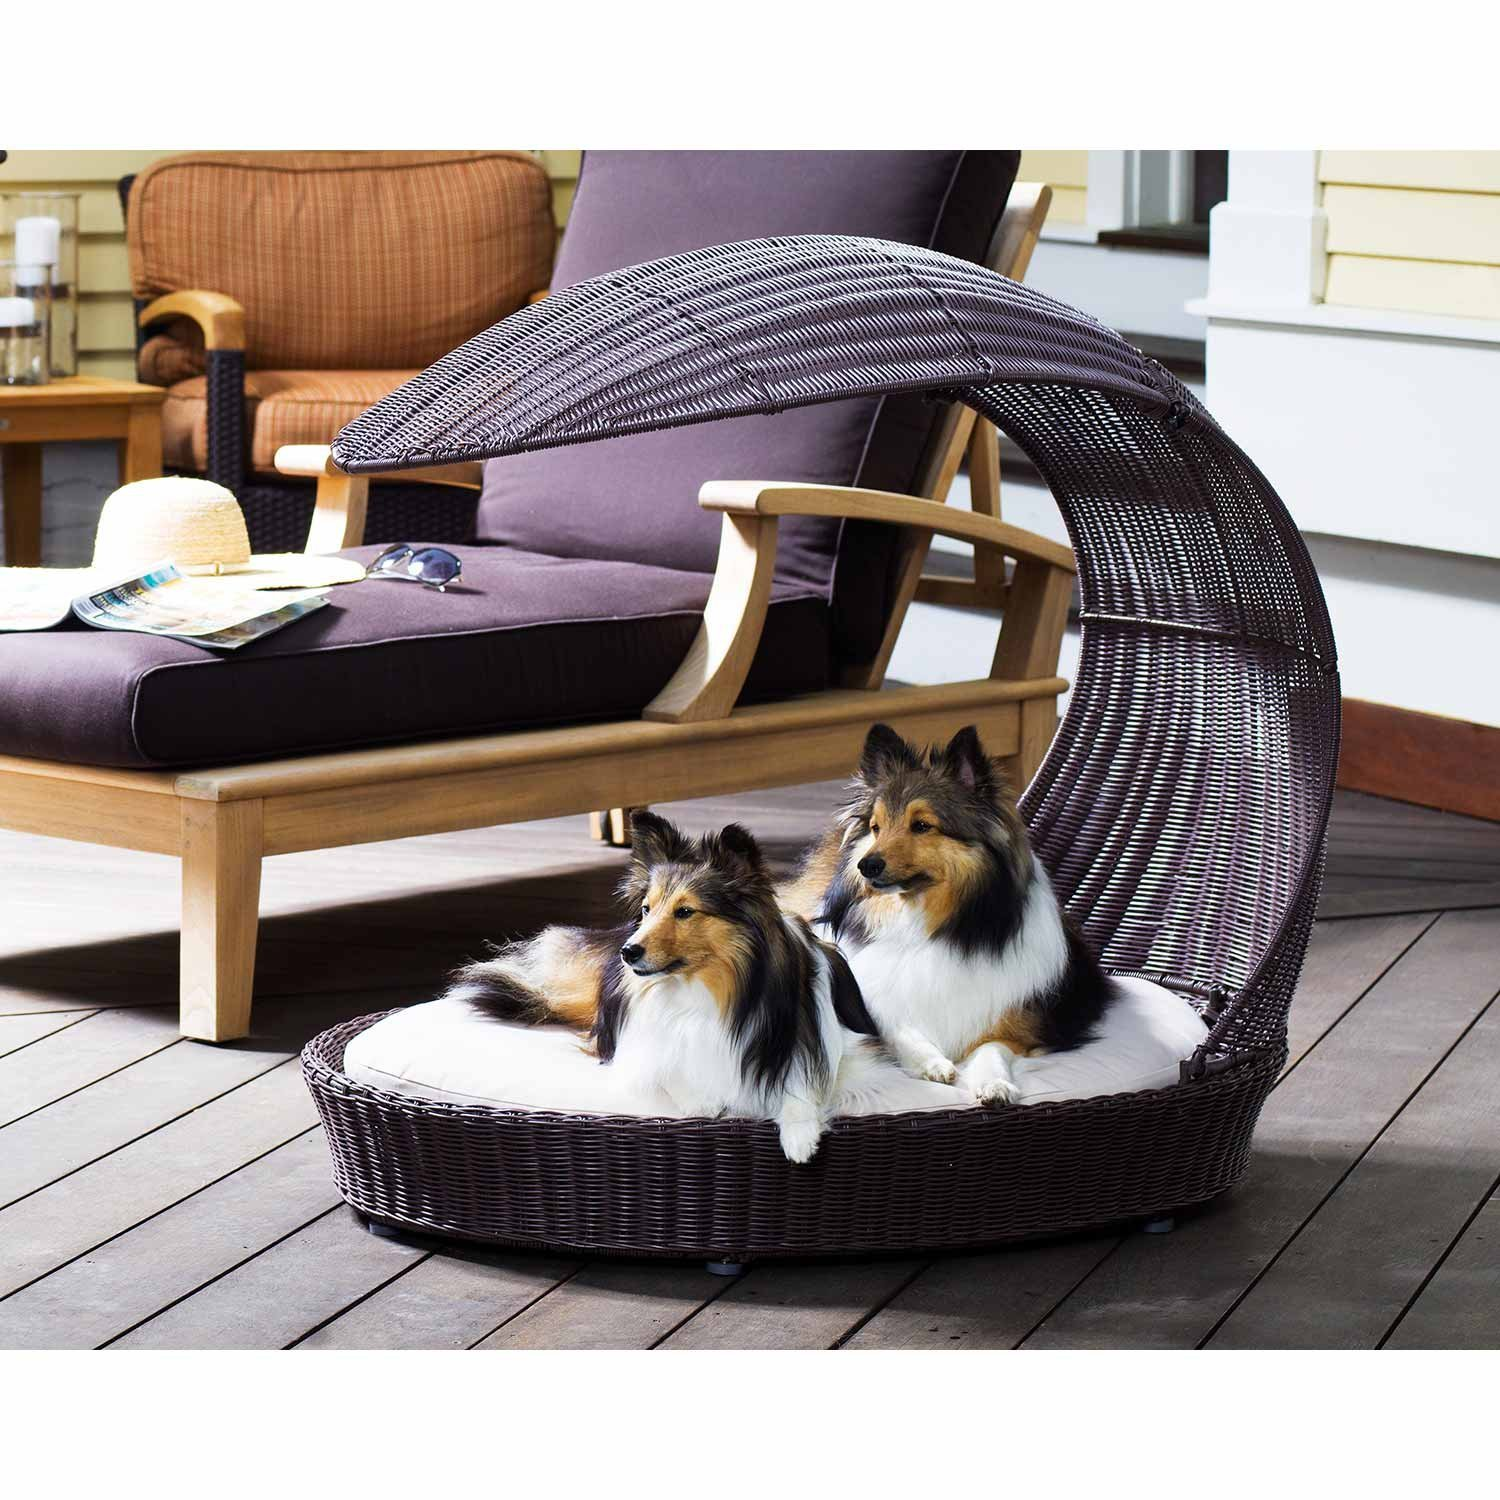 Outstanding Refined Canine Outdoor Dog Bed Thepetfurniturestore Interior Design Ideas Tzicisoteloinfo